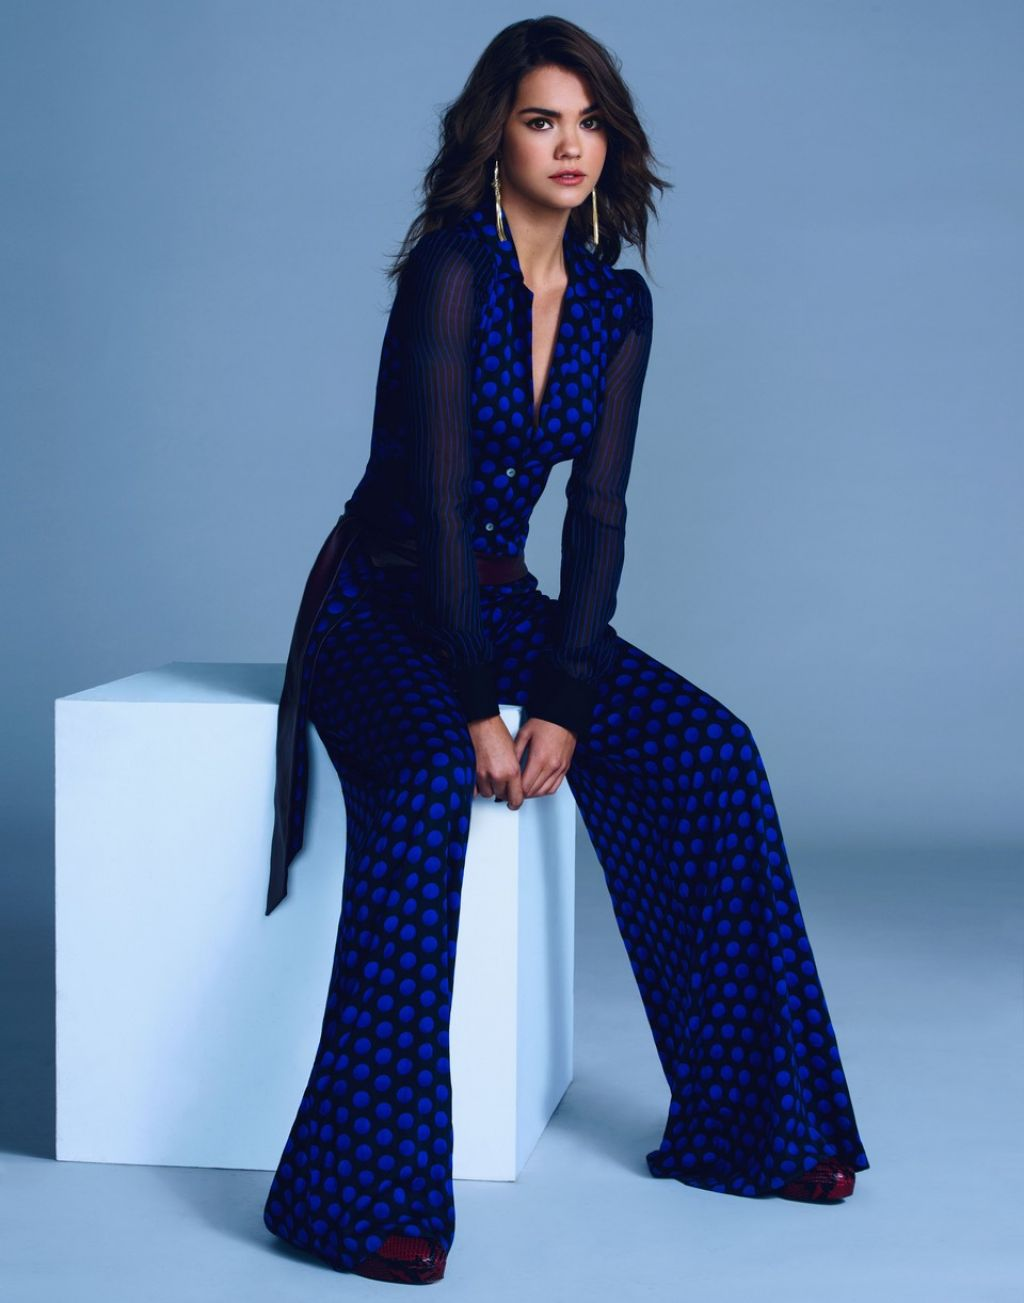 Maia Mitchell Photoshoot July 2015